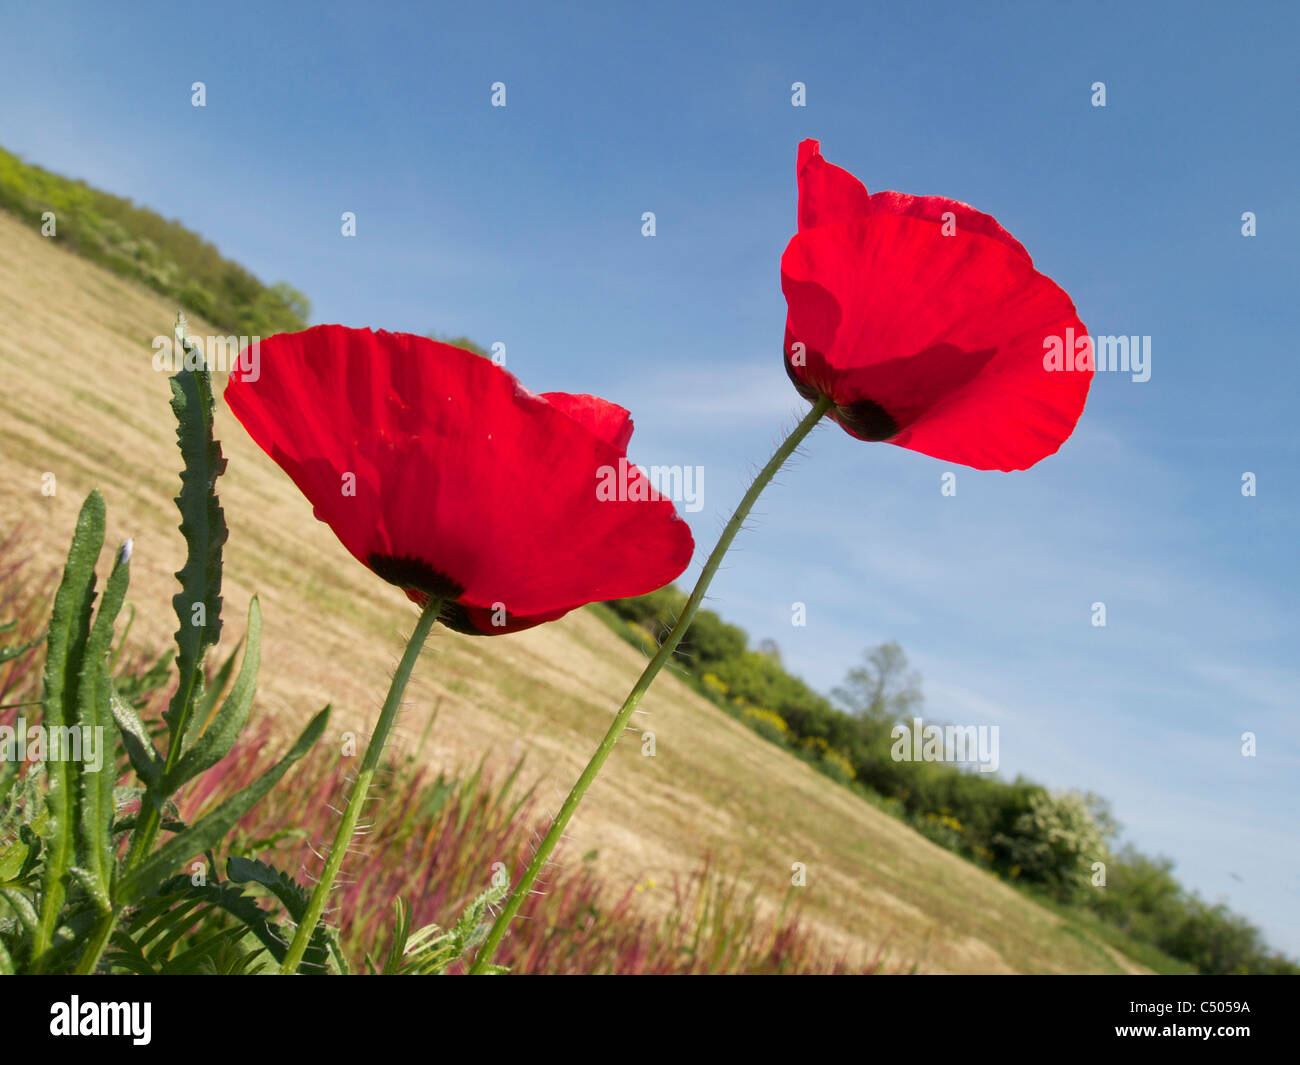 Bright red Poppy flowers in a field in France against a blue sky - Stock Image